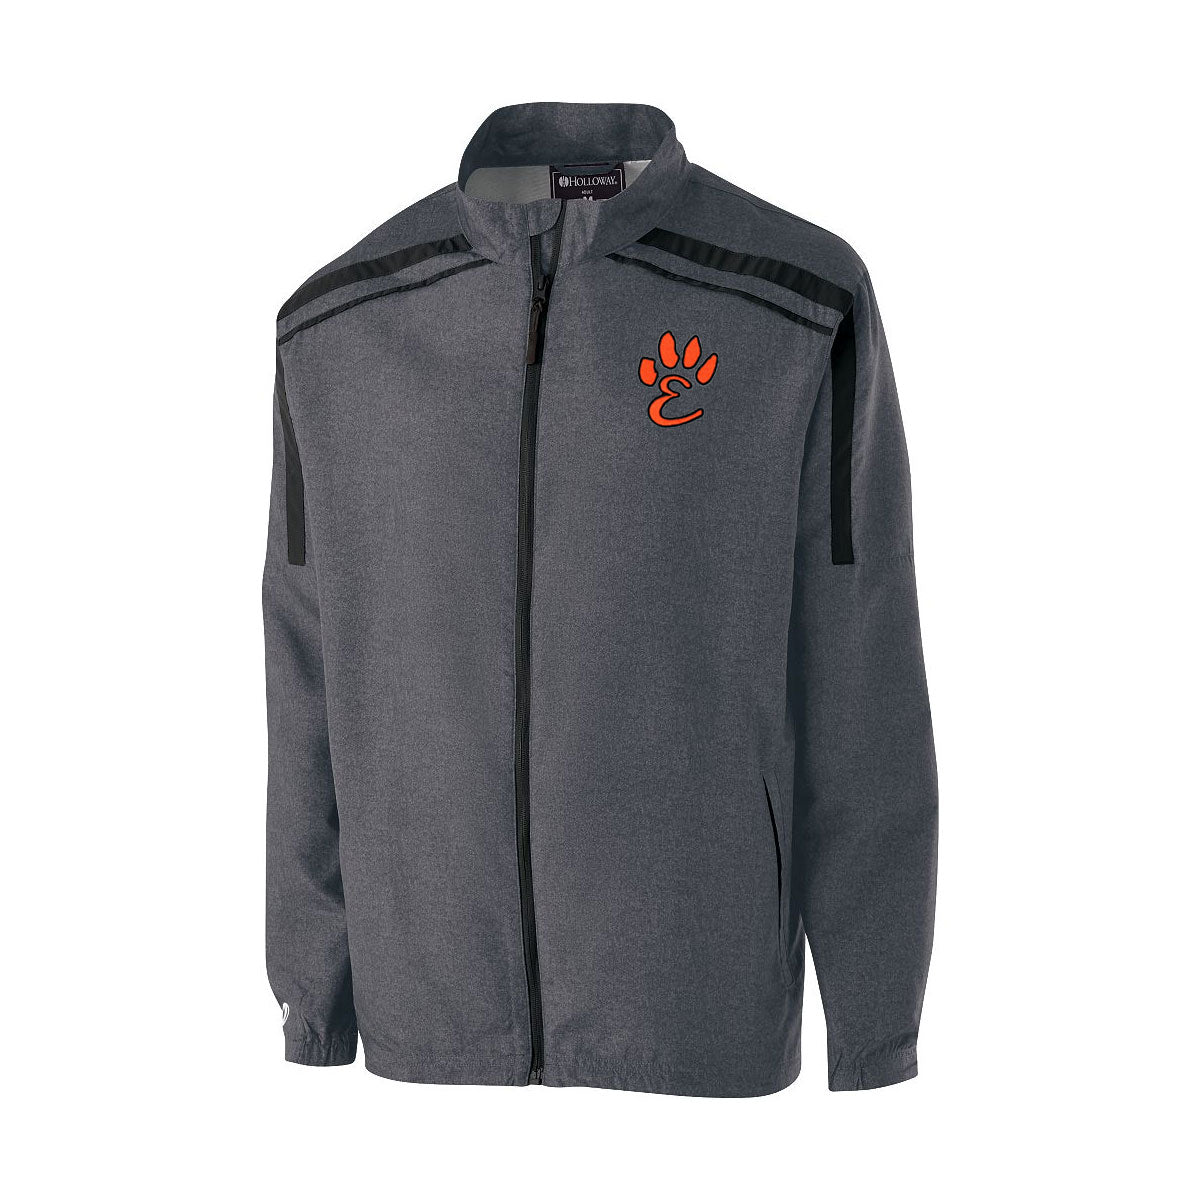 Edwardsville High School Raider Full Zip Lightweight Jacket